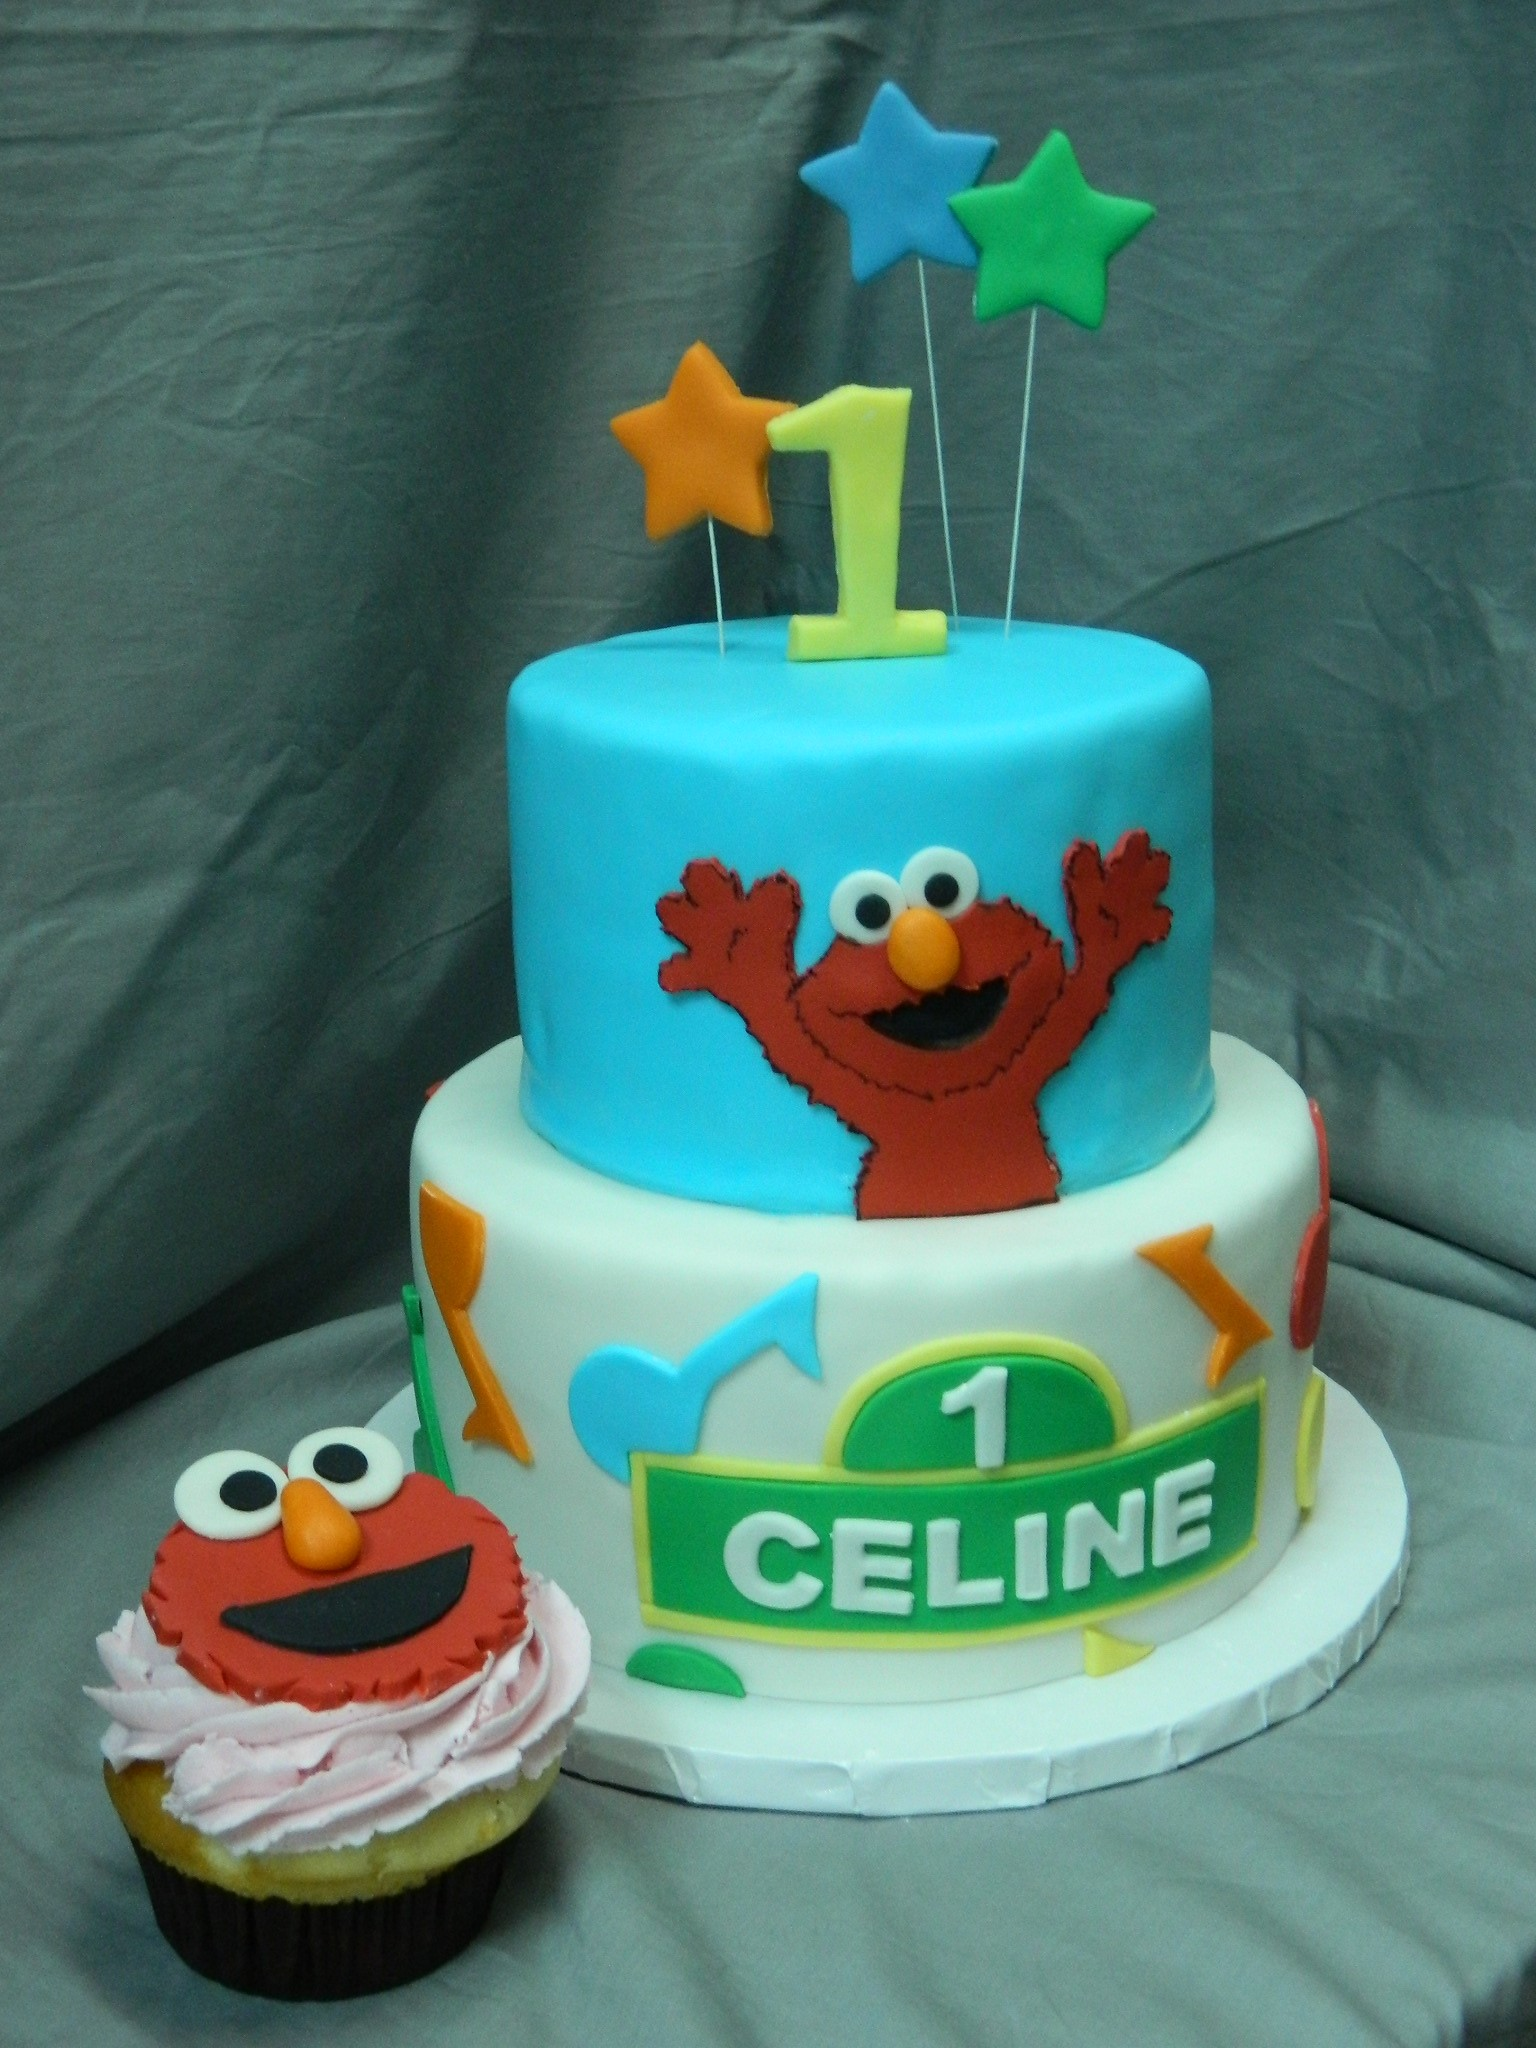 Elmo themed custom birthday cake